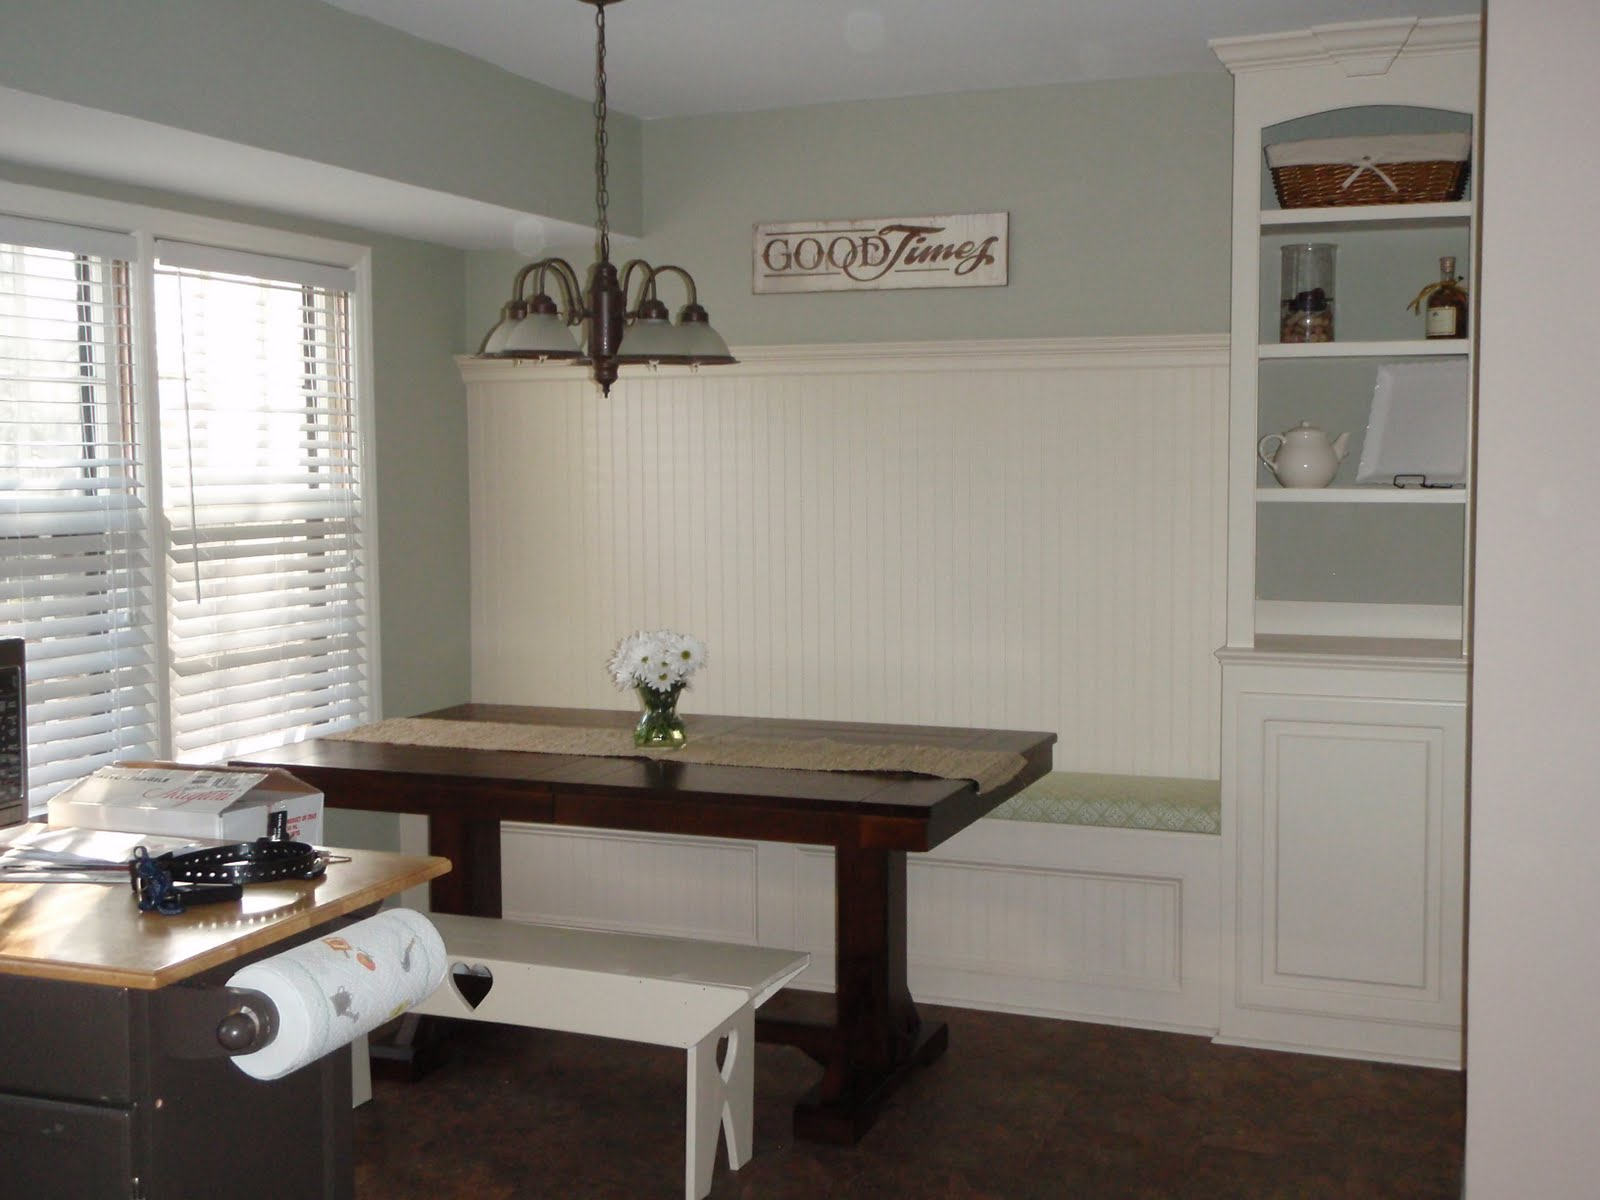 Remodelaholic kitchen renovation with built in banquette for Built in kitchen seating ideas